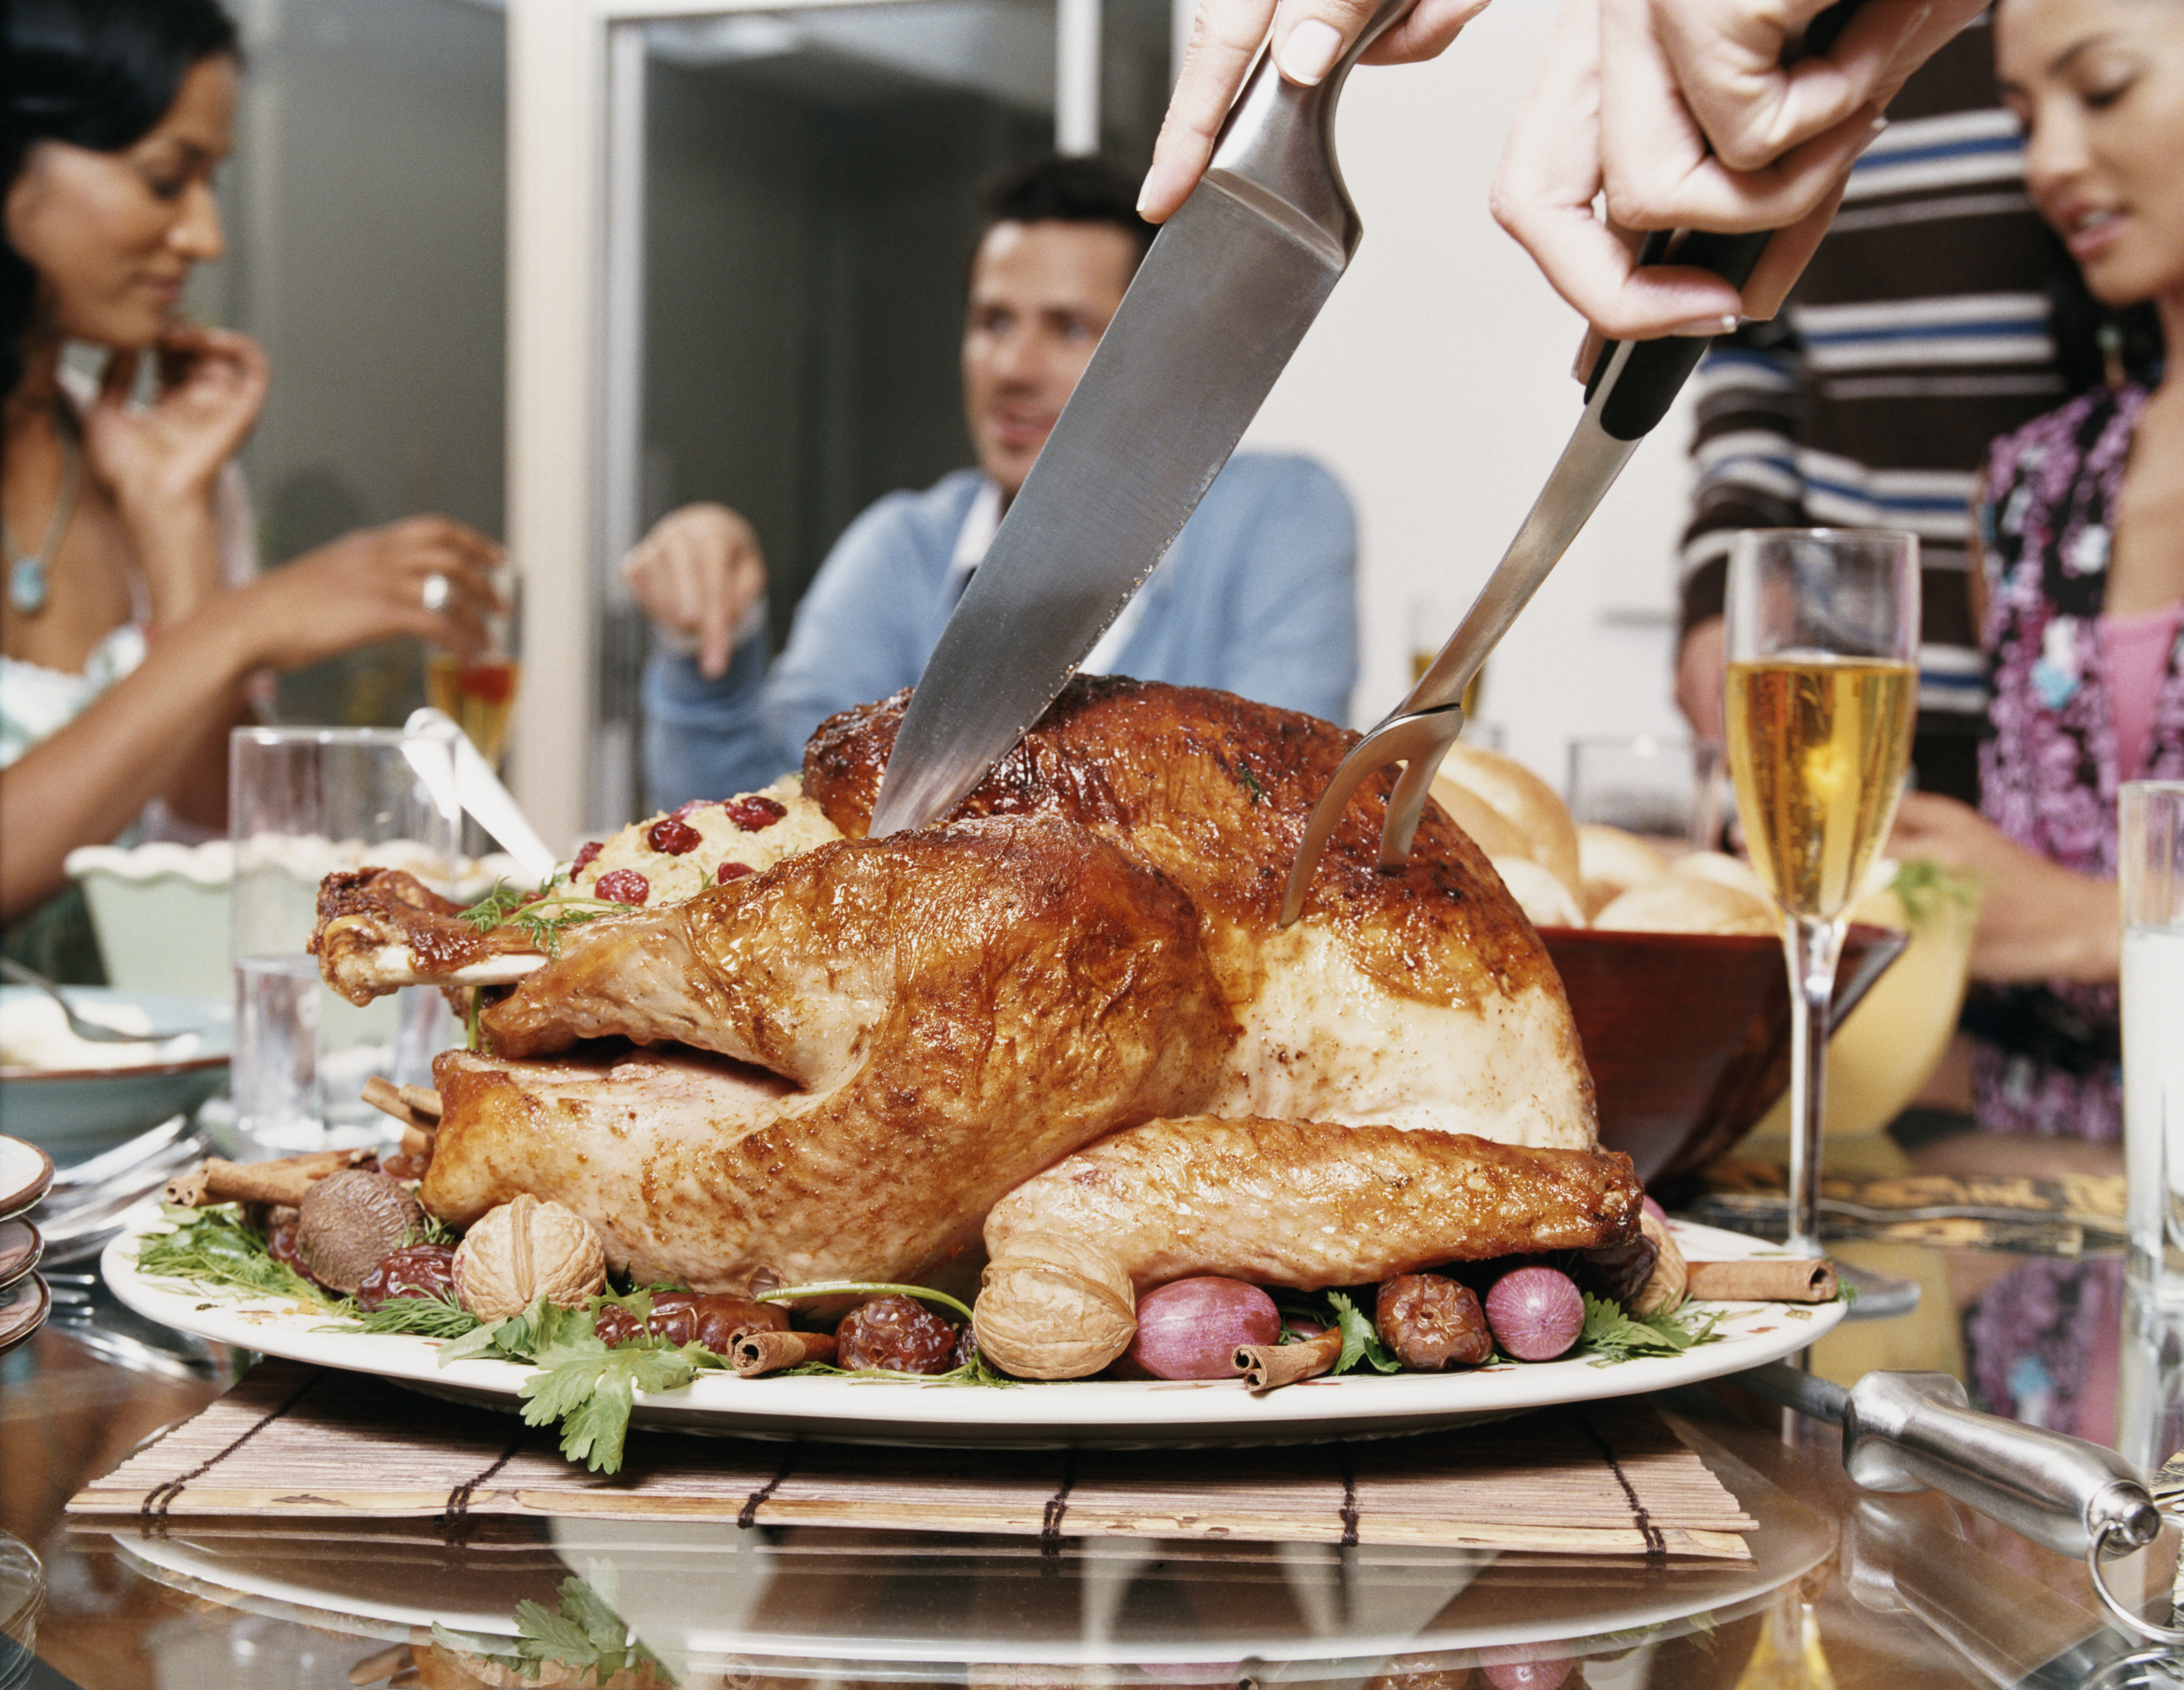 Small Group of Friends Sit Round a Dining Table While a Thanksgiving Turkey is Cut